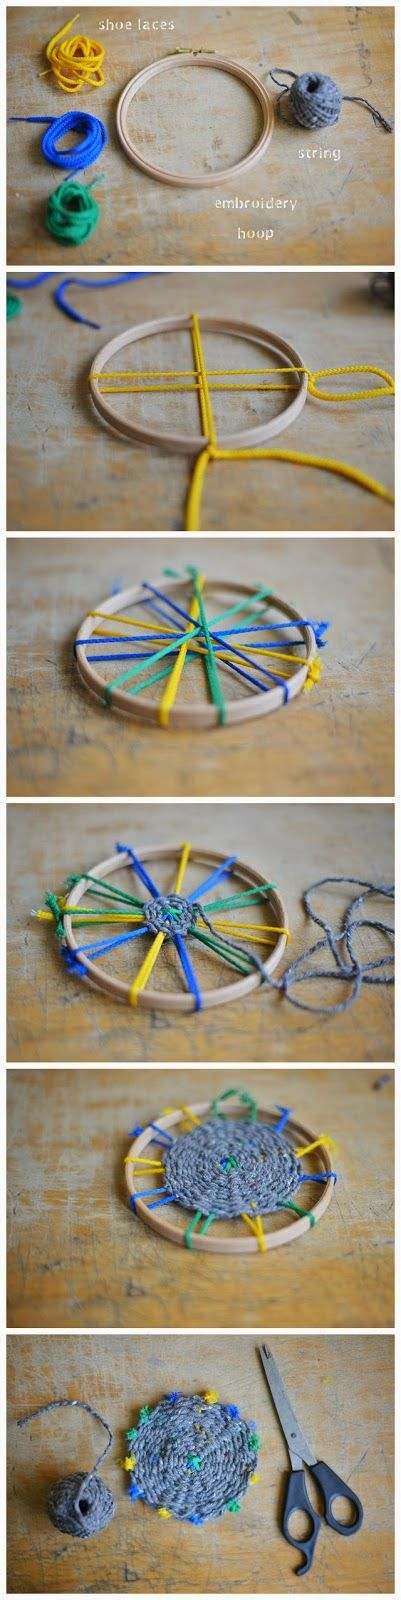 Amazing Race-TASTE AROUND THE WORLD Diy : Woven Coasters                                                                                                                                                                                 More